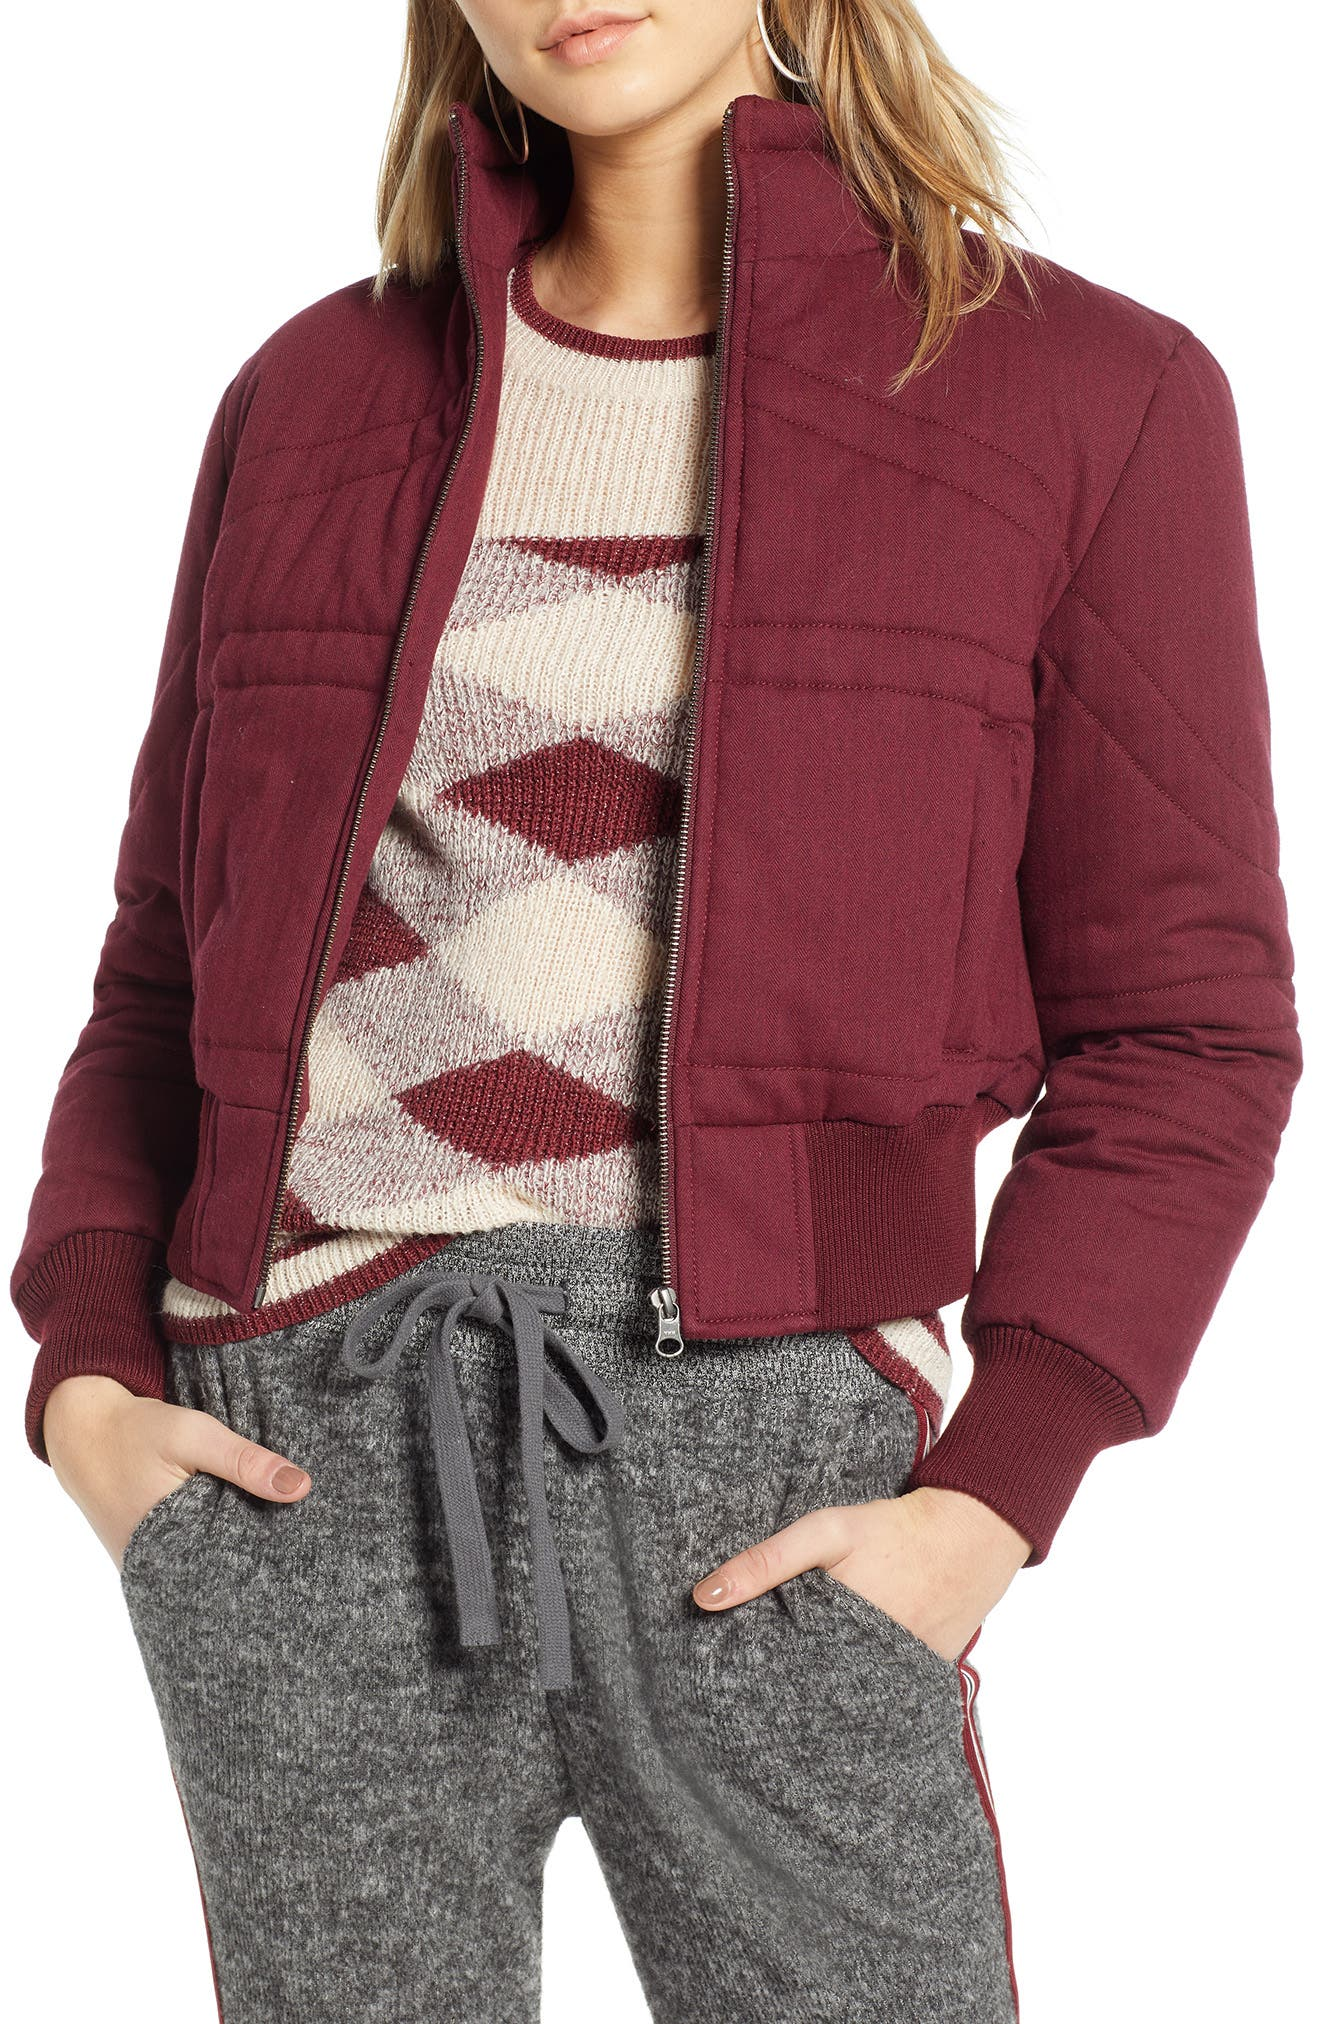 TREASURE & BOND, Flannel Crop Puffer Jacket, Main thumbnail 1, color, RED TANNIN HEATHER